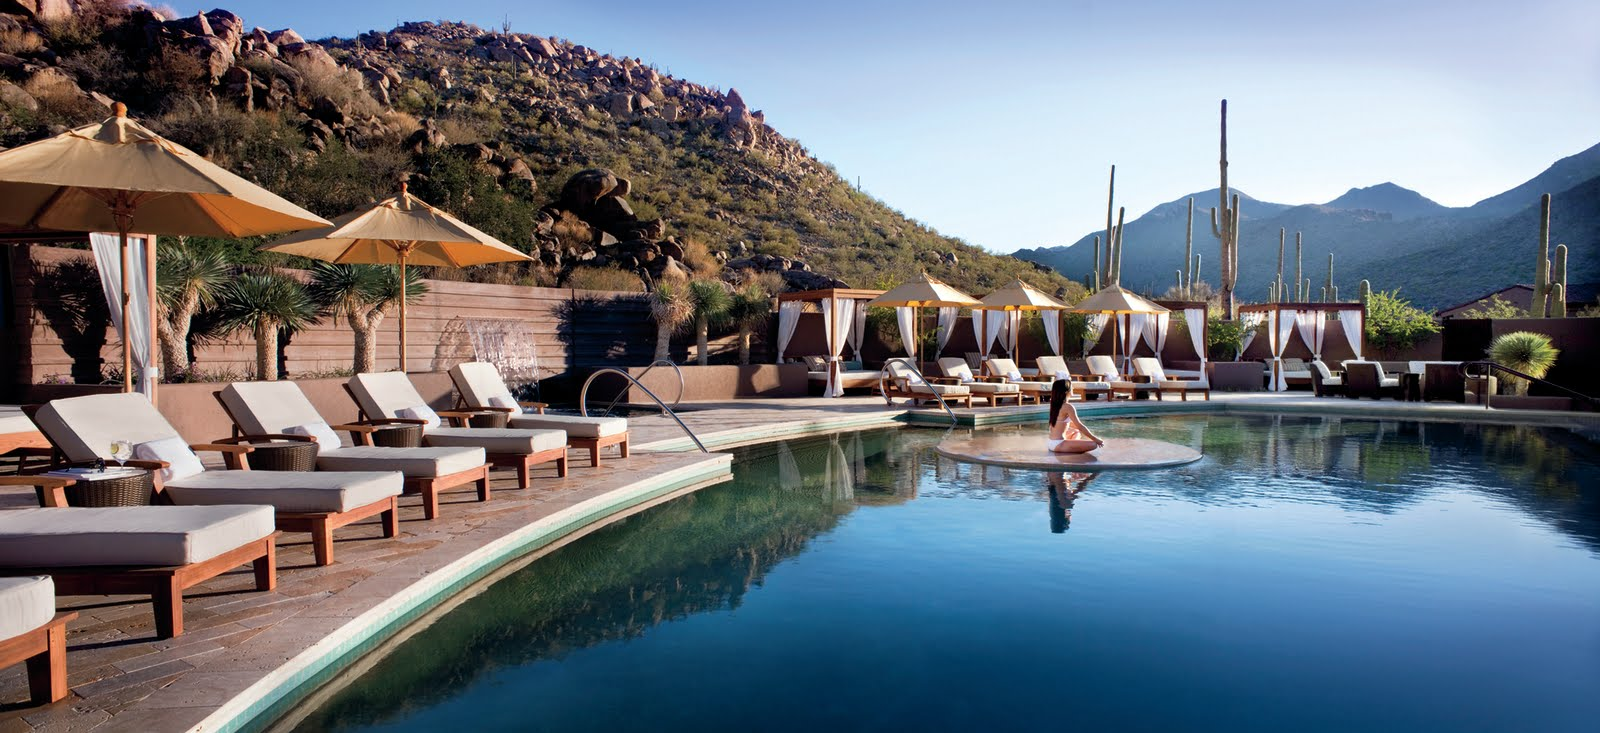 Miraval Life in Balance Spa is located in Southern California and offers massage, yoga, facial treatments, and more. Learn more about our luxury spa today.